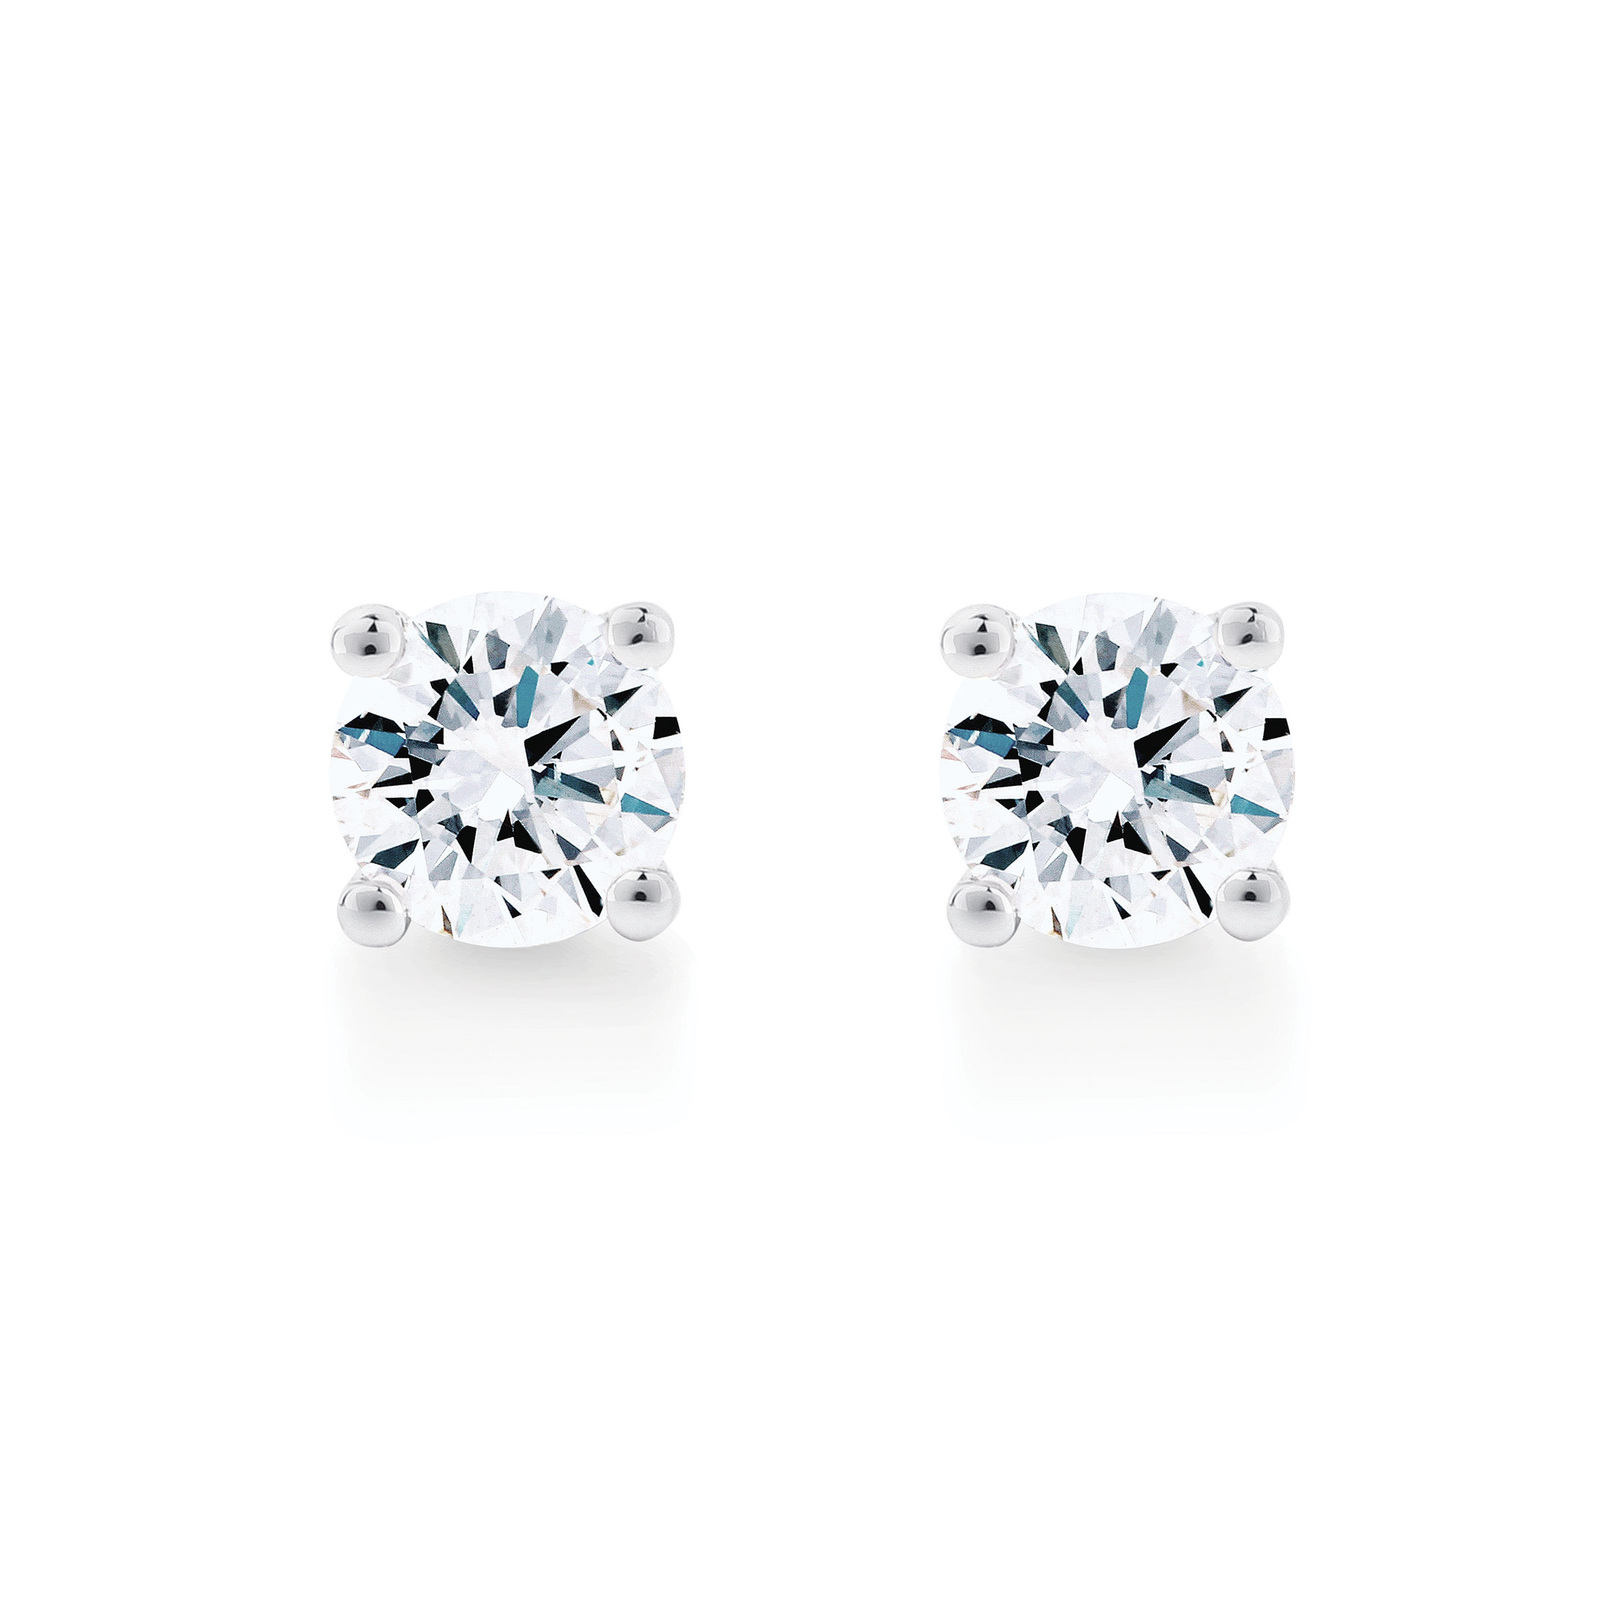 Libretto 18ct White Gold 1.00ct Diamond Stud Earrings